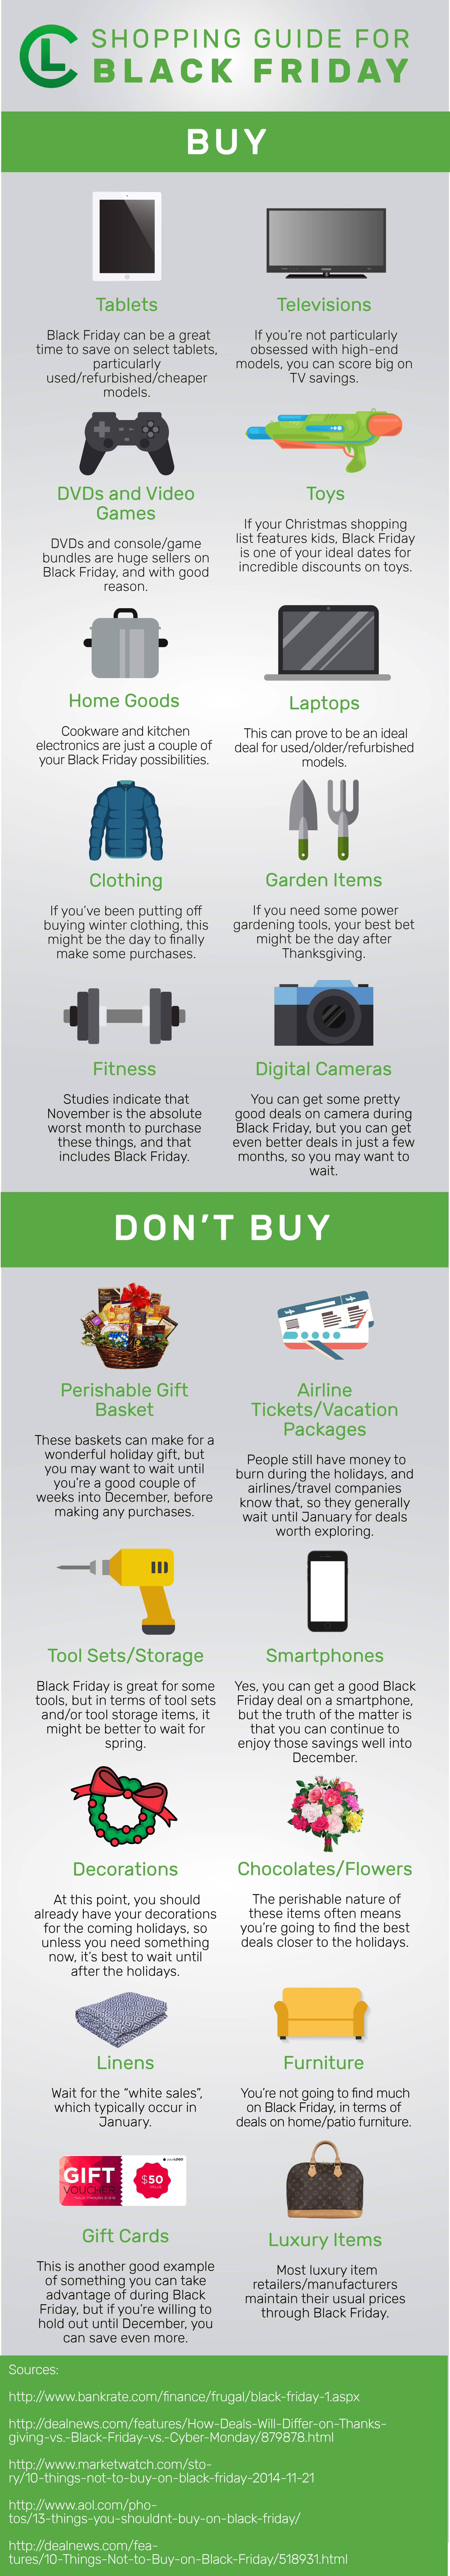 Shopping Guide For Black Friday Infographic